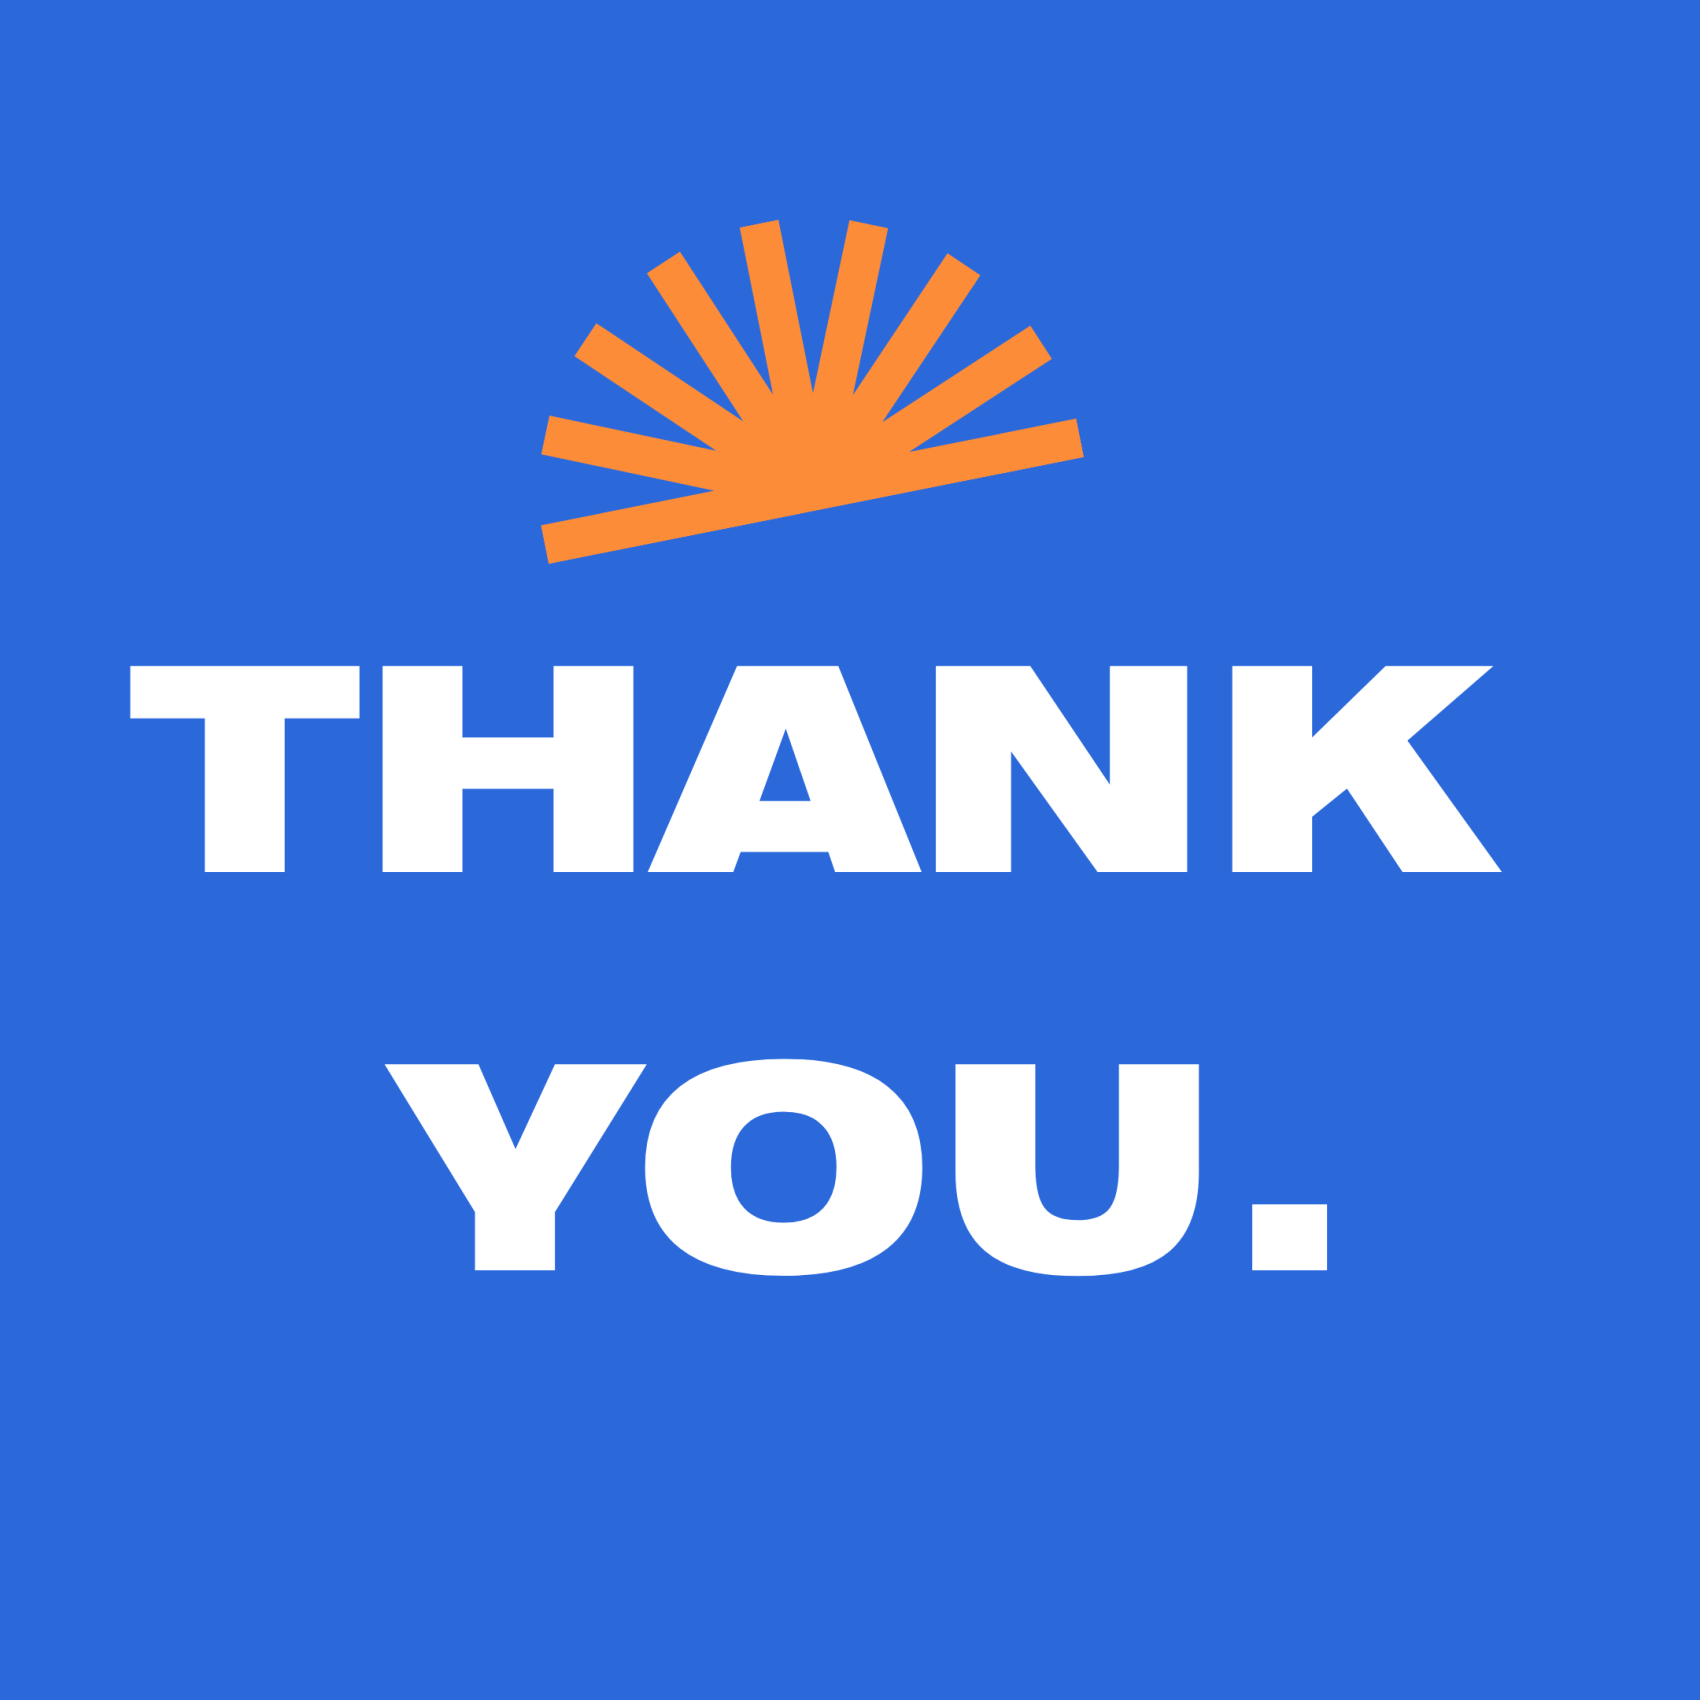 Thank you for helping us grow!